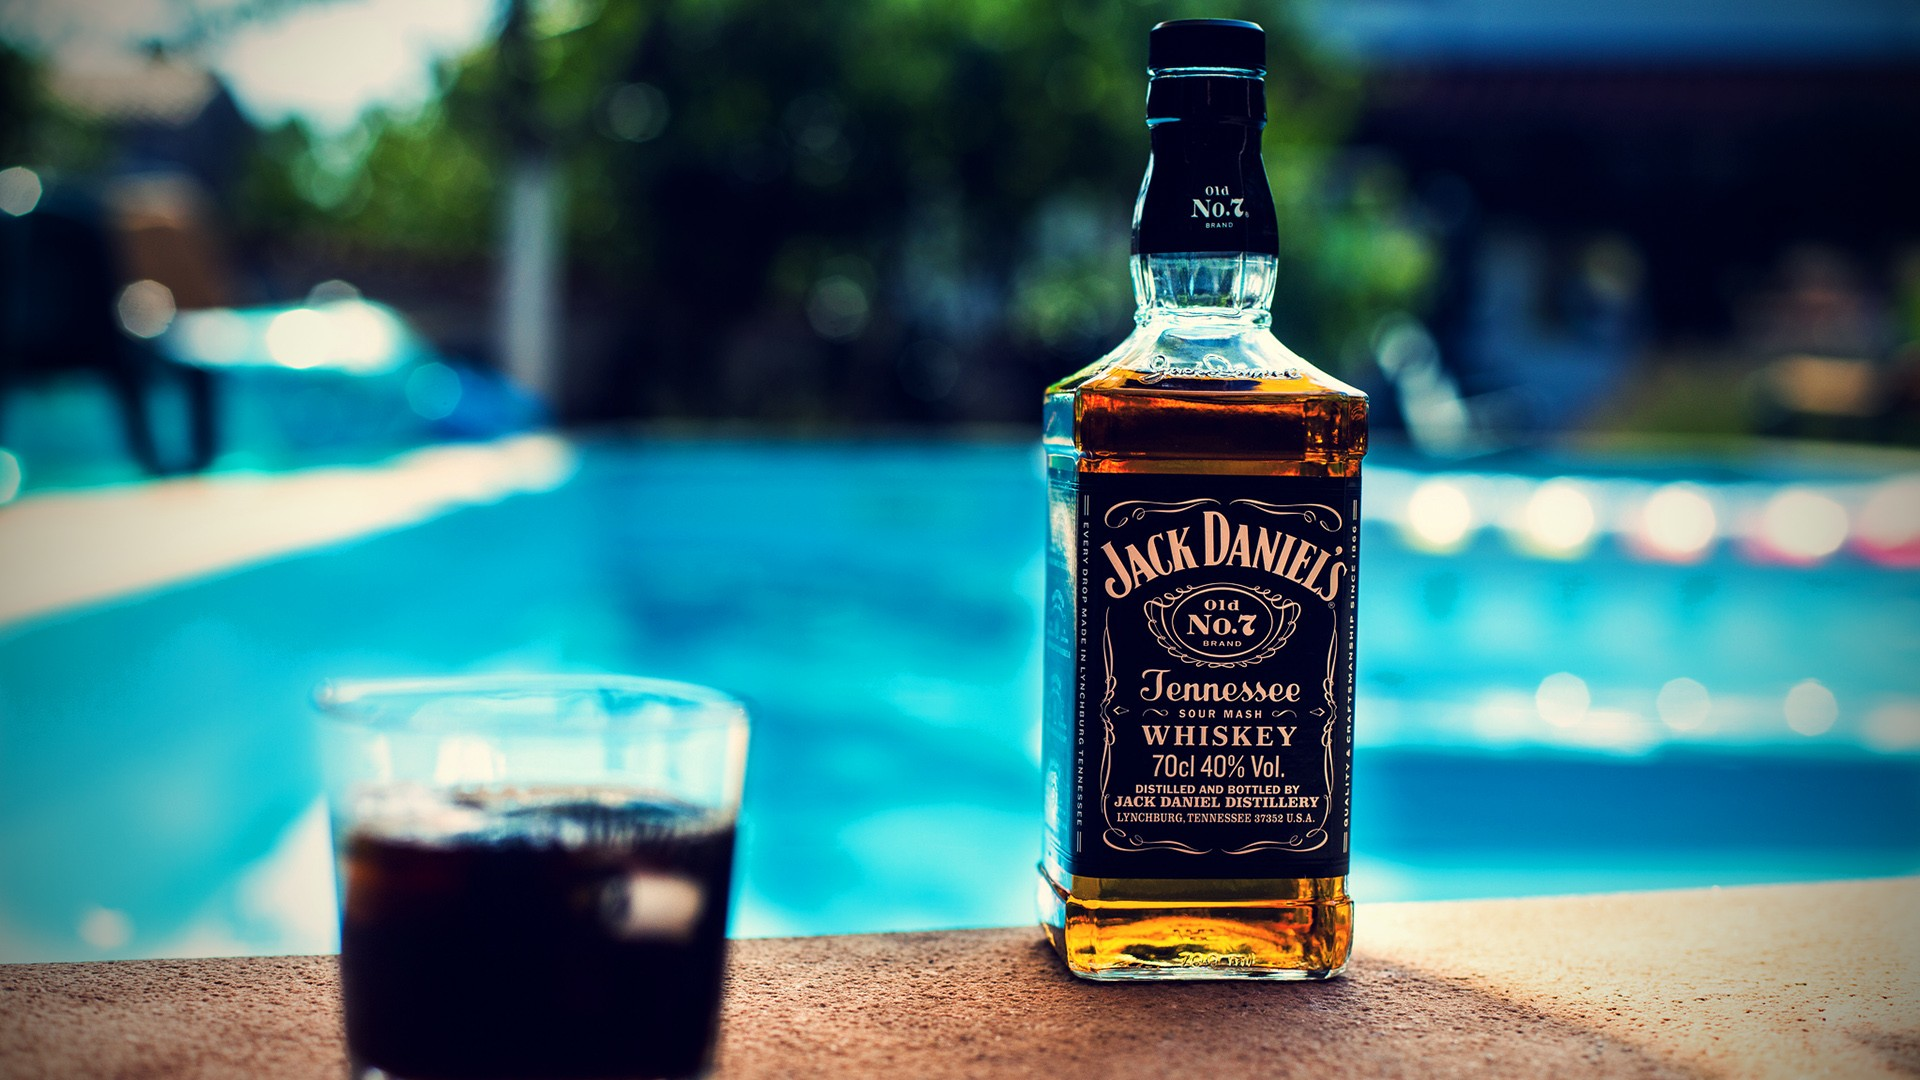 1920x1080 > Jack Daniels Wallpapers